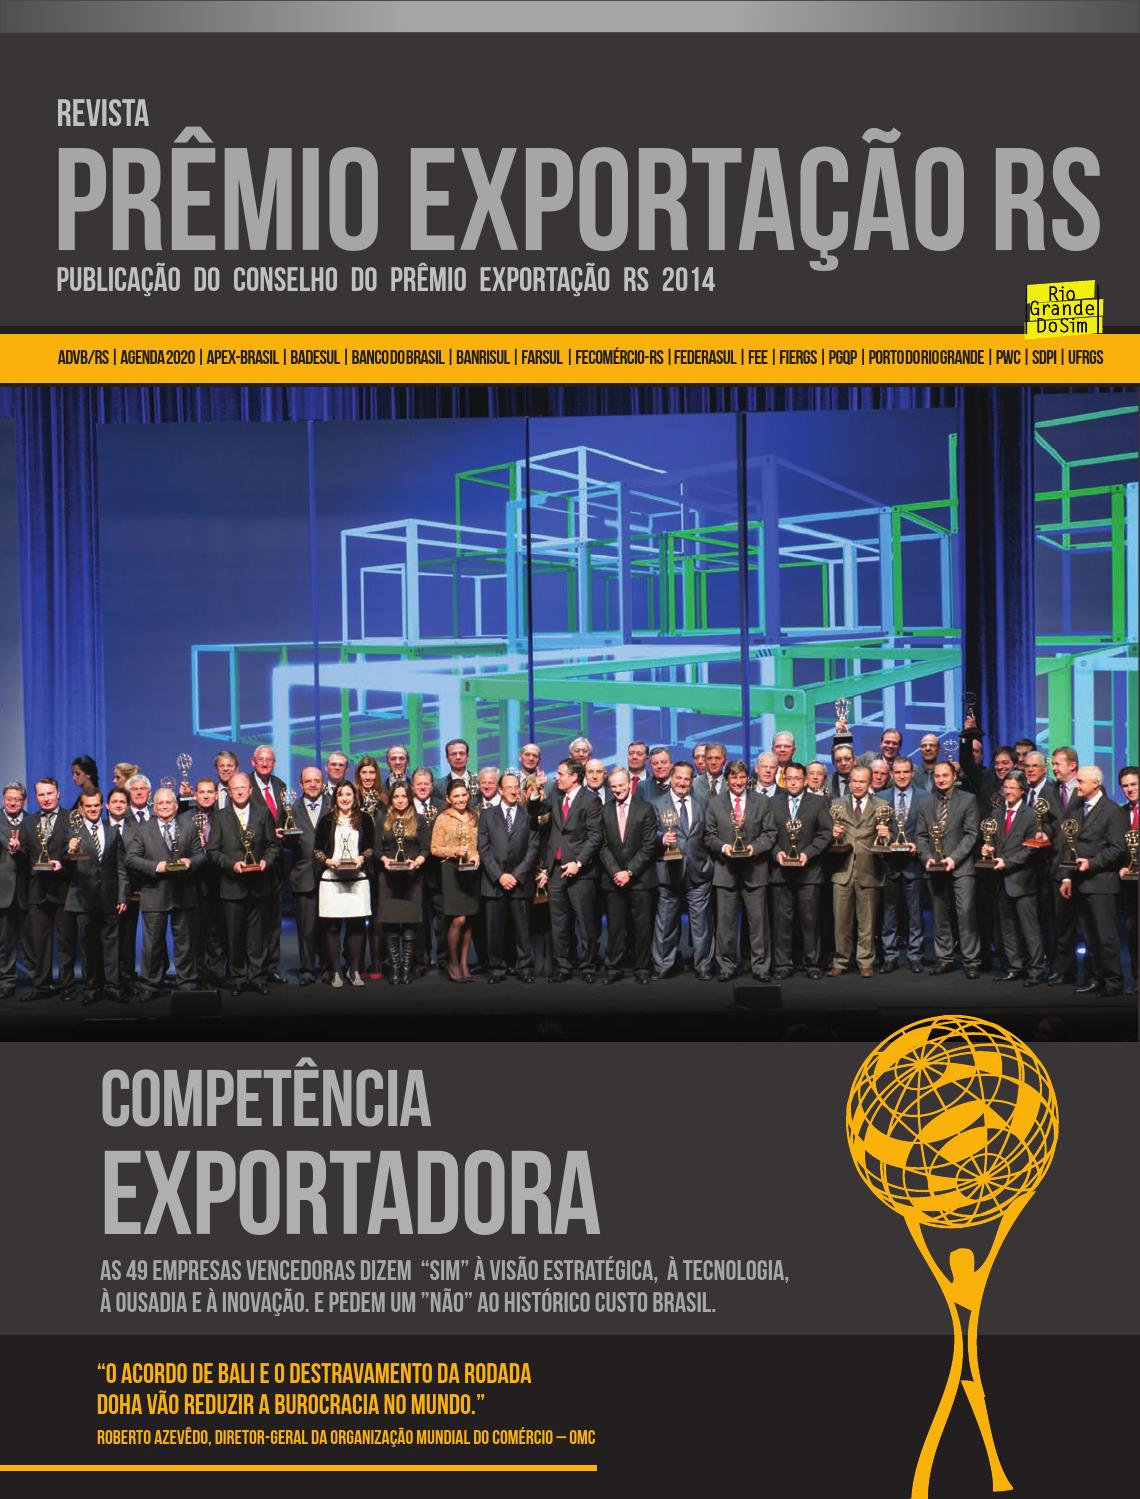 Prmio exportao rs 2014 by advb rs issuu fandeluxe Gallery